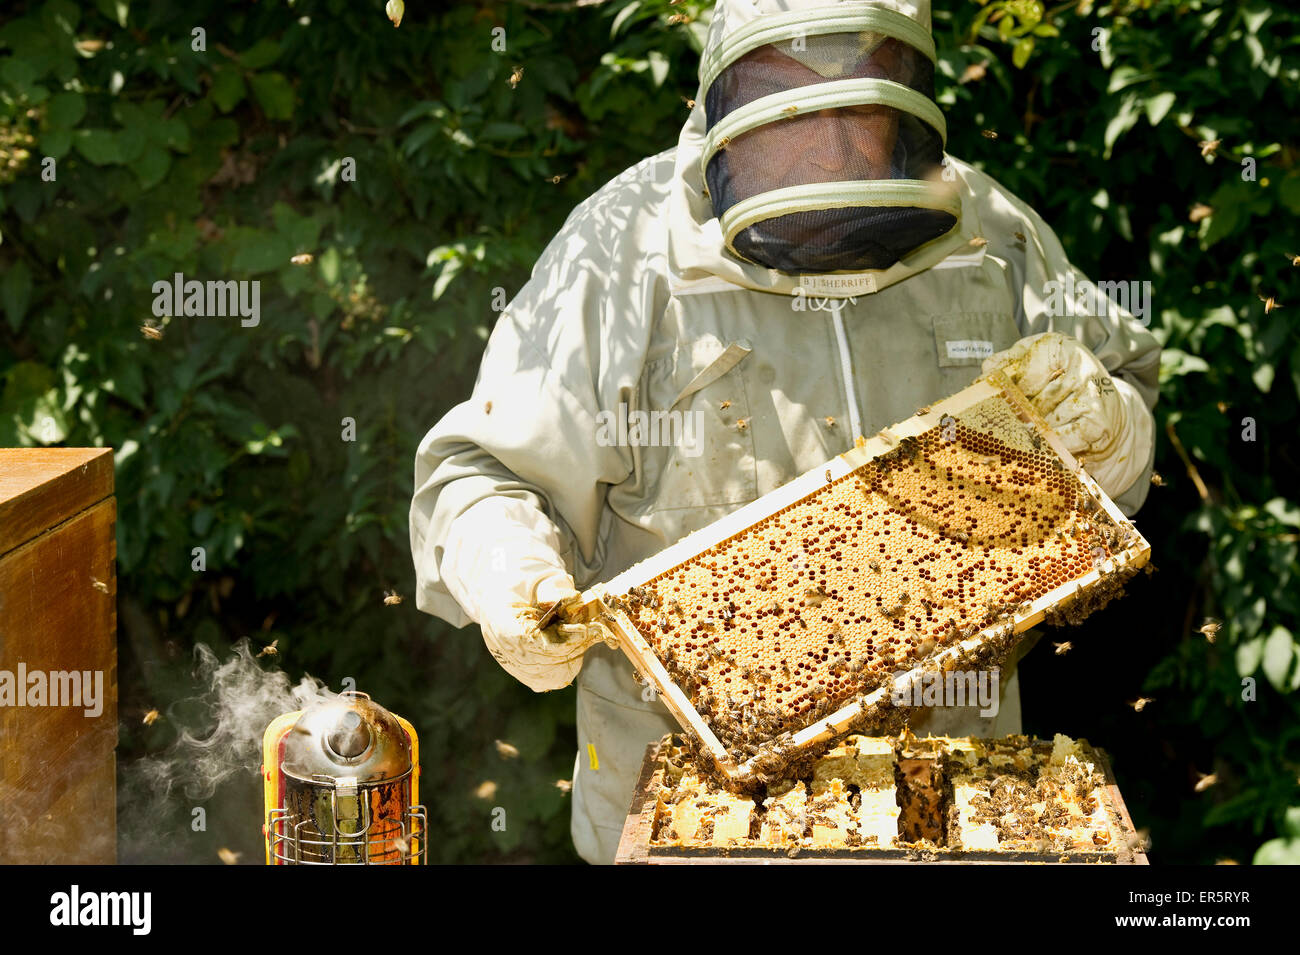 Beekeeper with honeycombs, Freiburg im Breisgau, Black Forest, Baden-Wuerttemberg, Germany - Stock Image